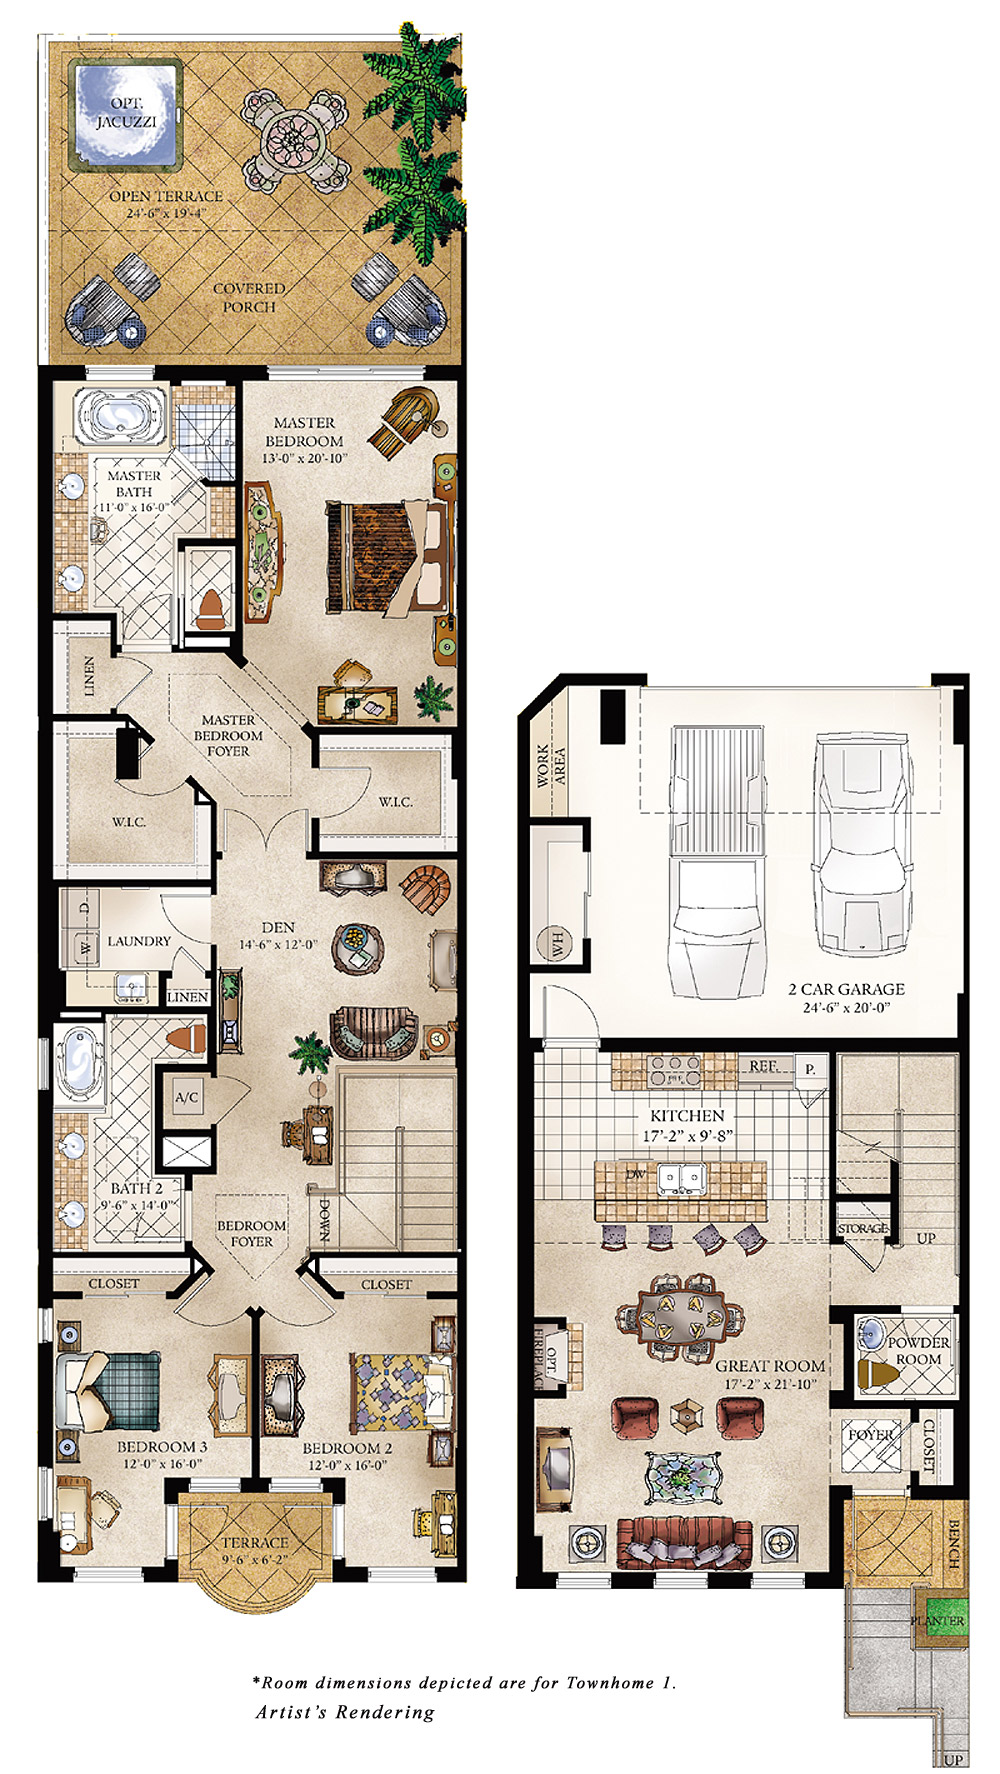 Costa verano condominiums and townhomes in jacksonville Luxury townhouse floor plans